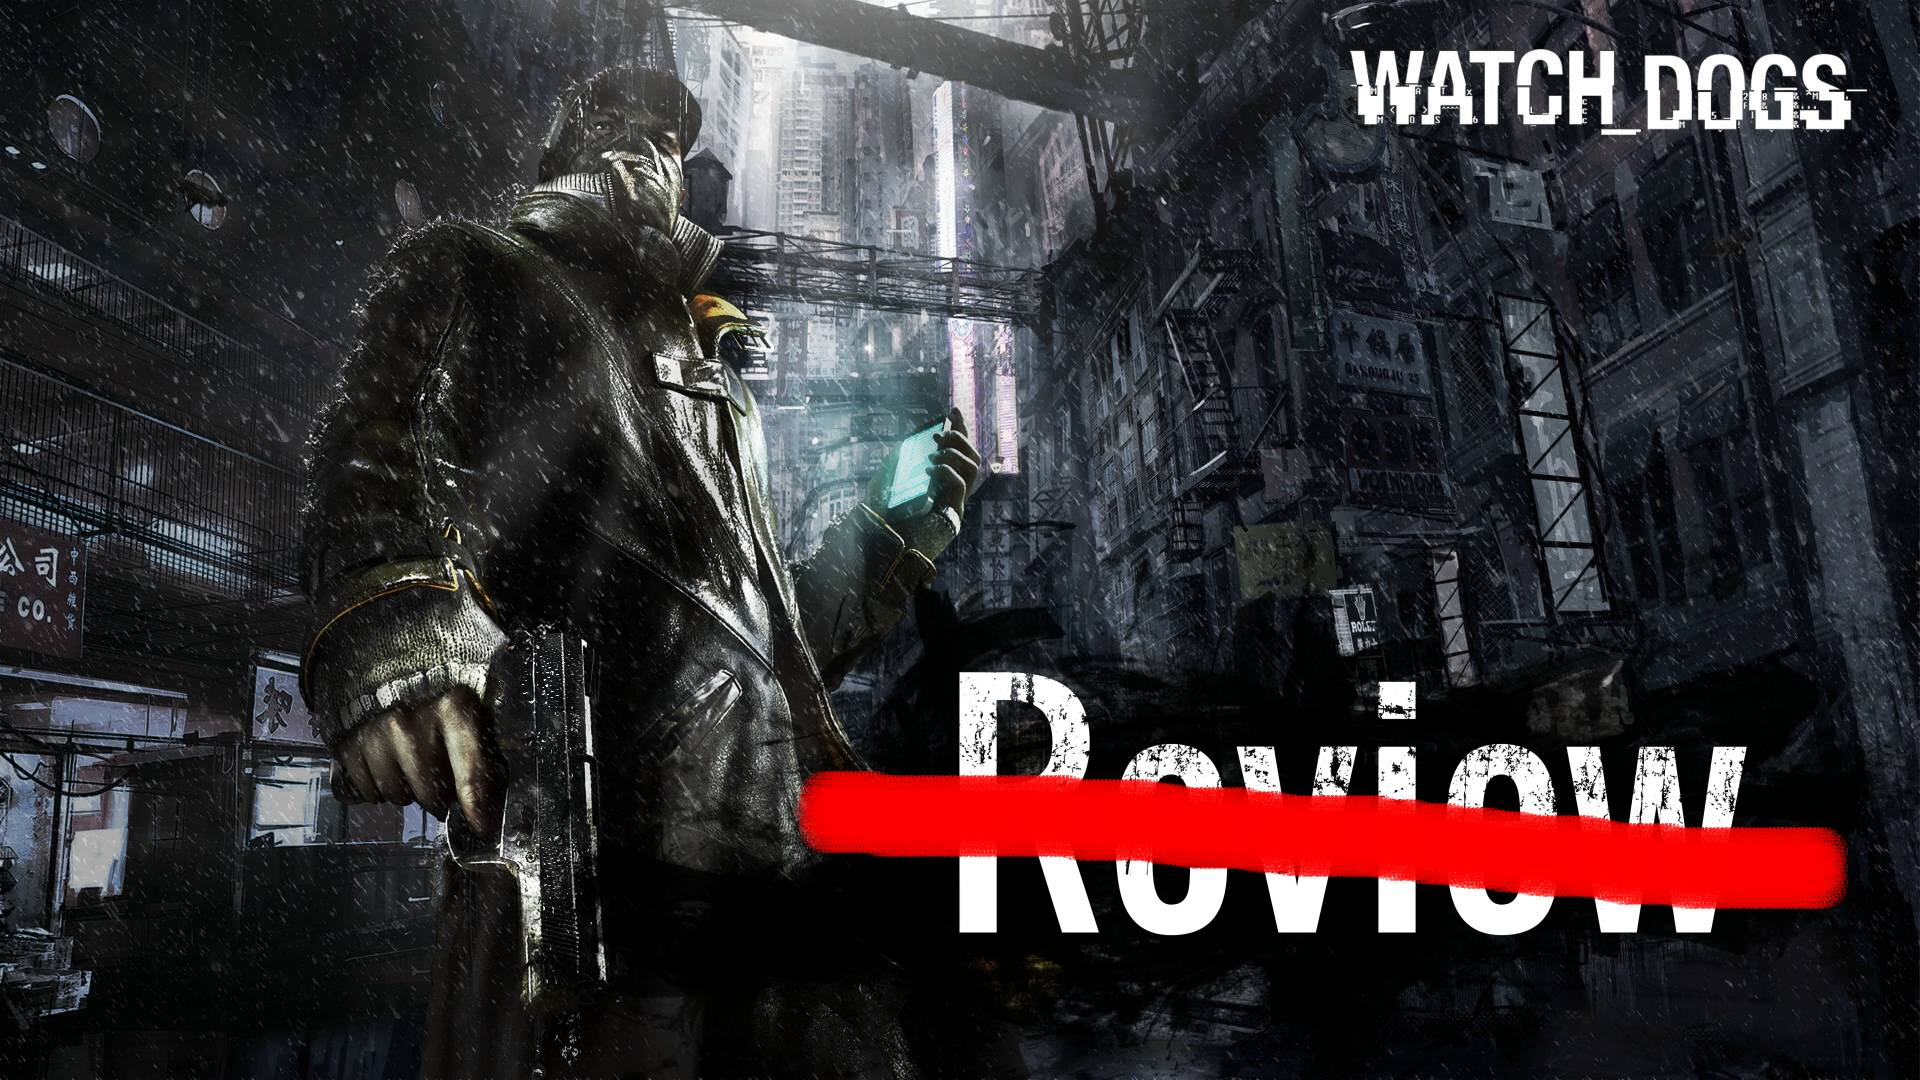 Photo of De ce nu i-am facut review lui Watch_Dogs!